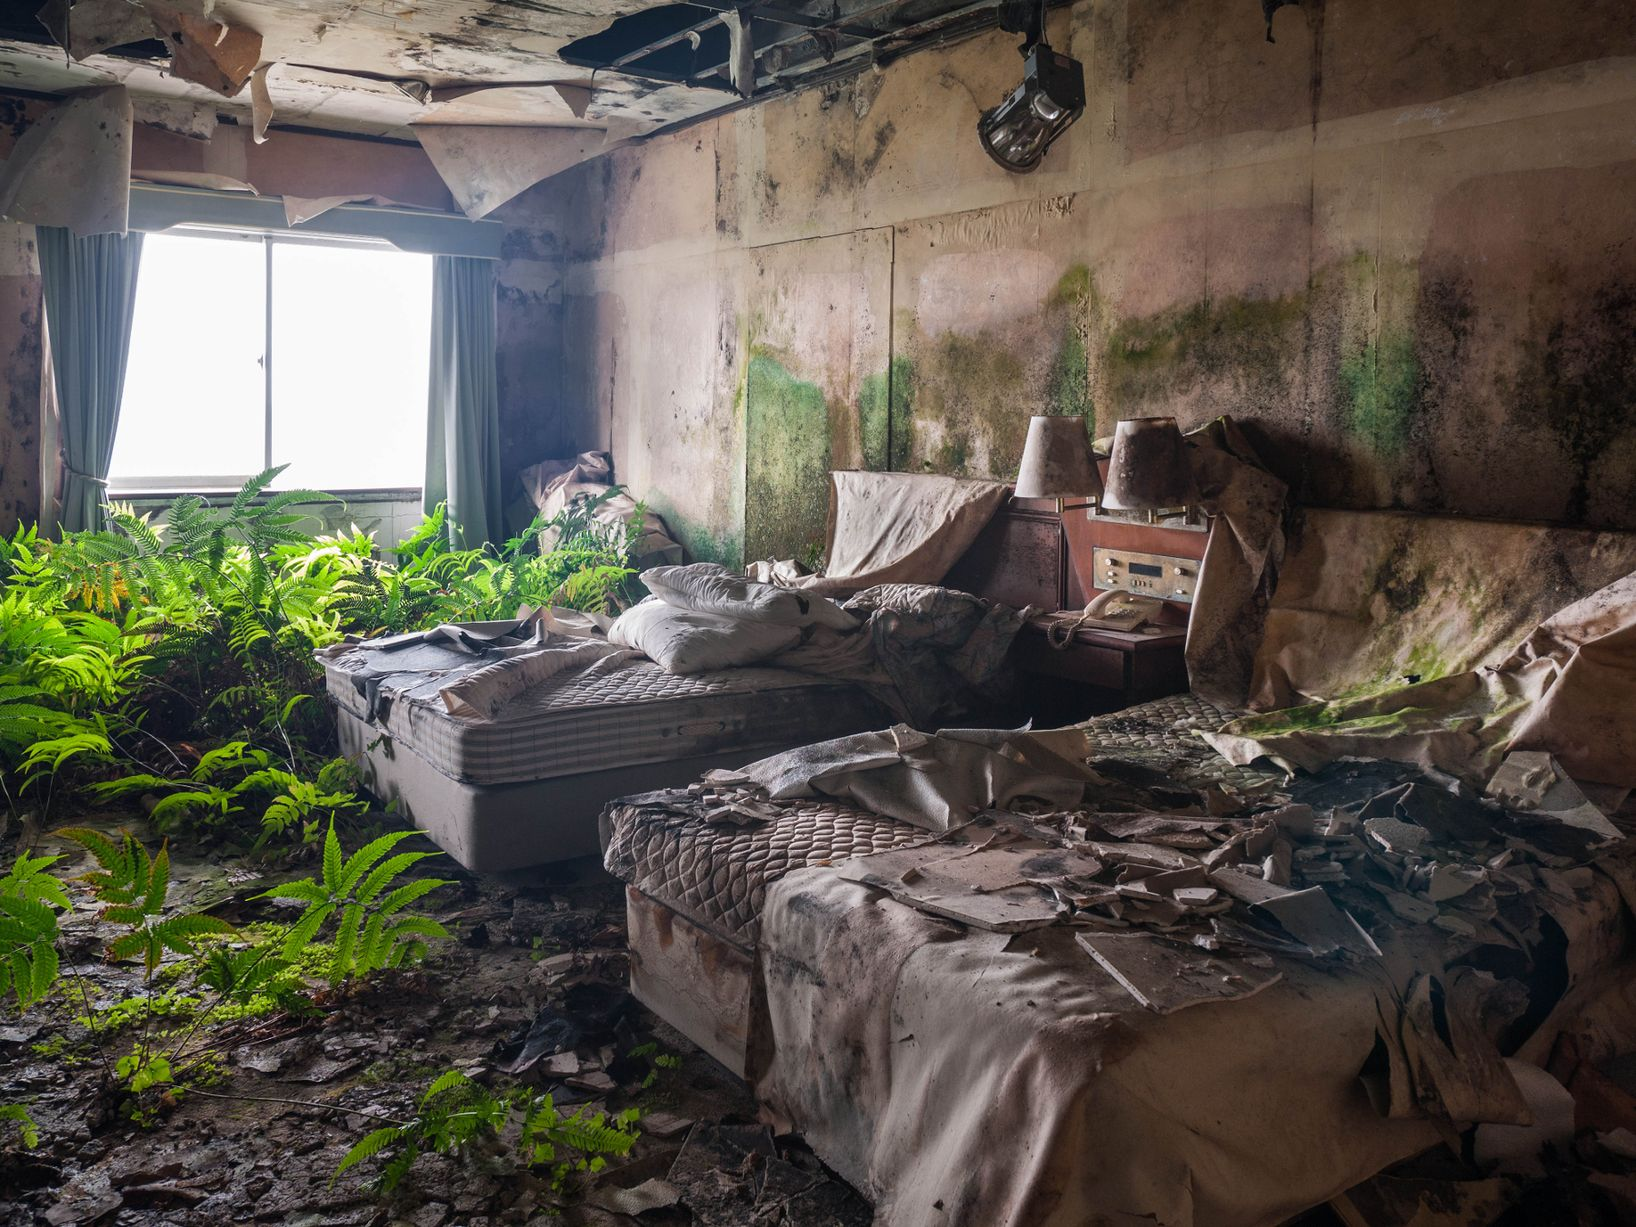 The Story Behind Haunting Abandoned Luxury Hotel In Japan